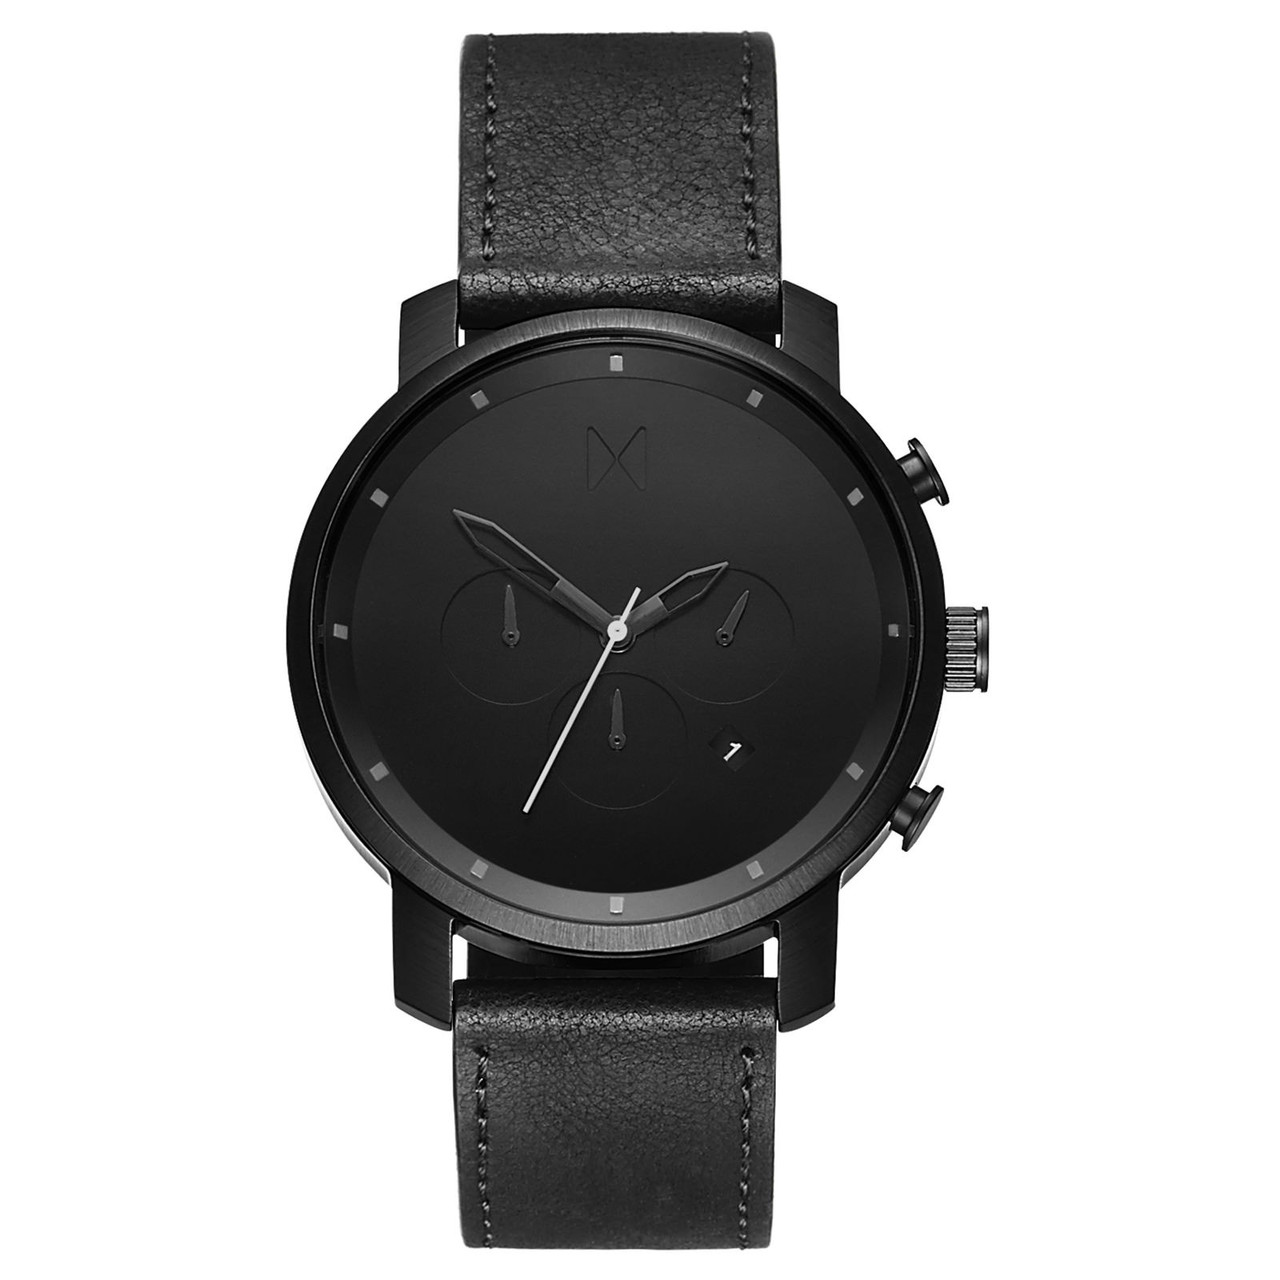 Часы мужские MVMT CHRONO BLACK LEATHER